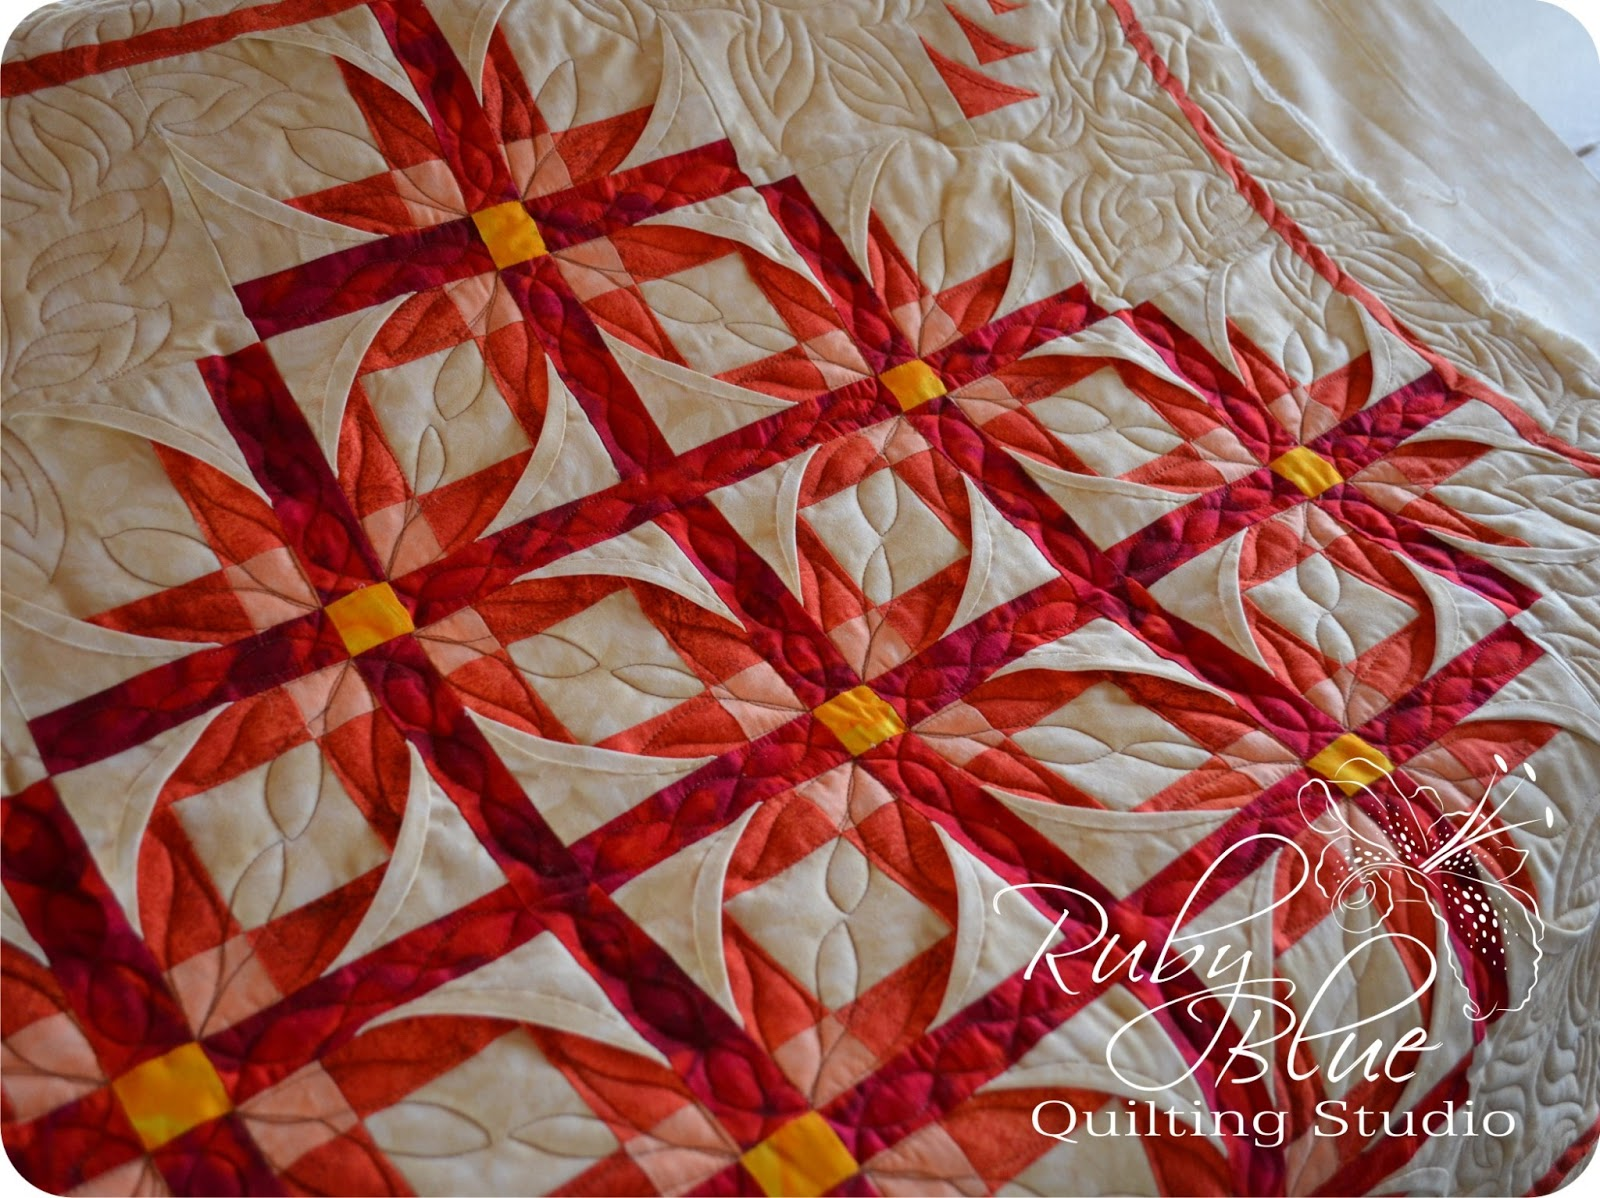 Ruby Blue Quilting Studio: Mexican Stars Round Two